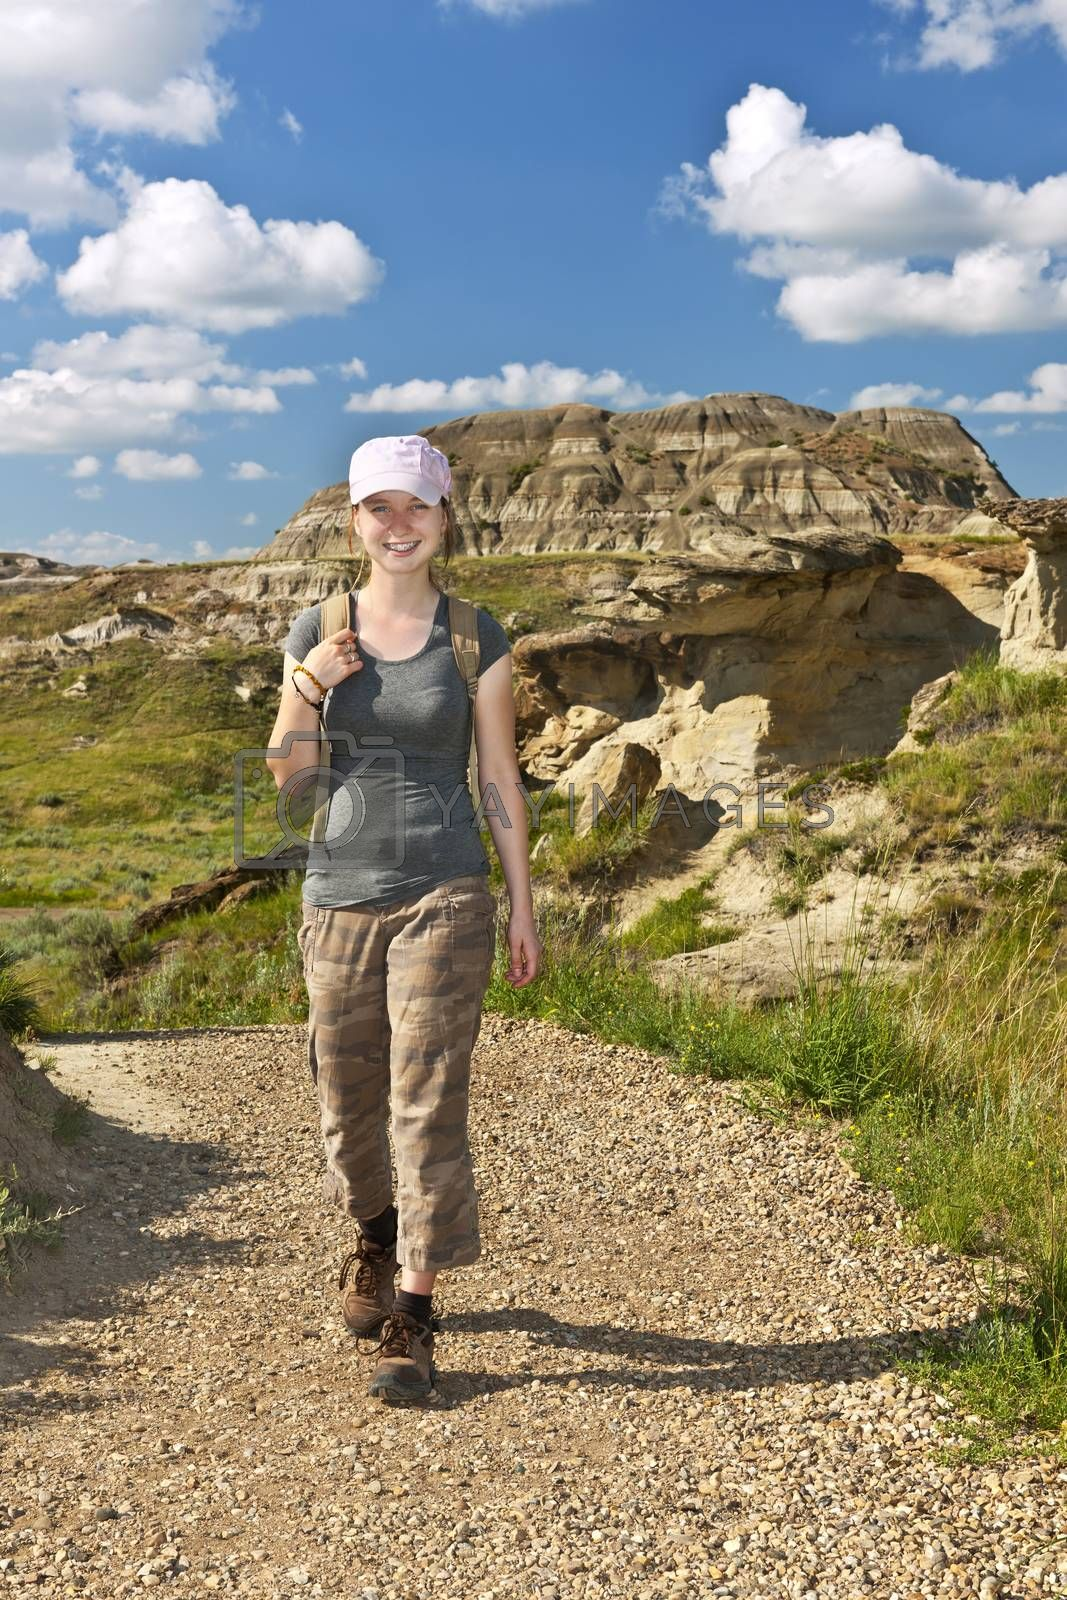 Smiling girl walking on path at the Badlands in Dinosaur provincial park, Alberta, Canada